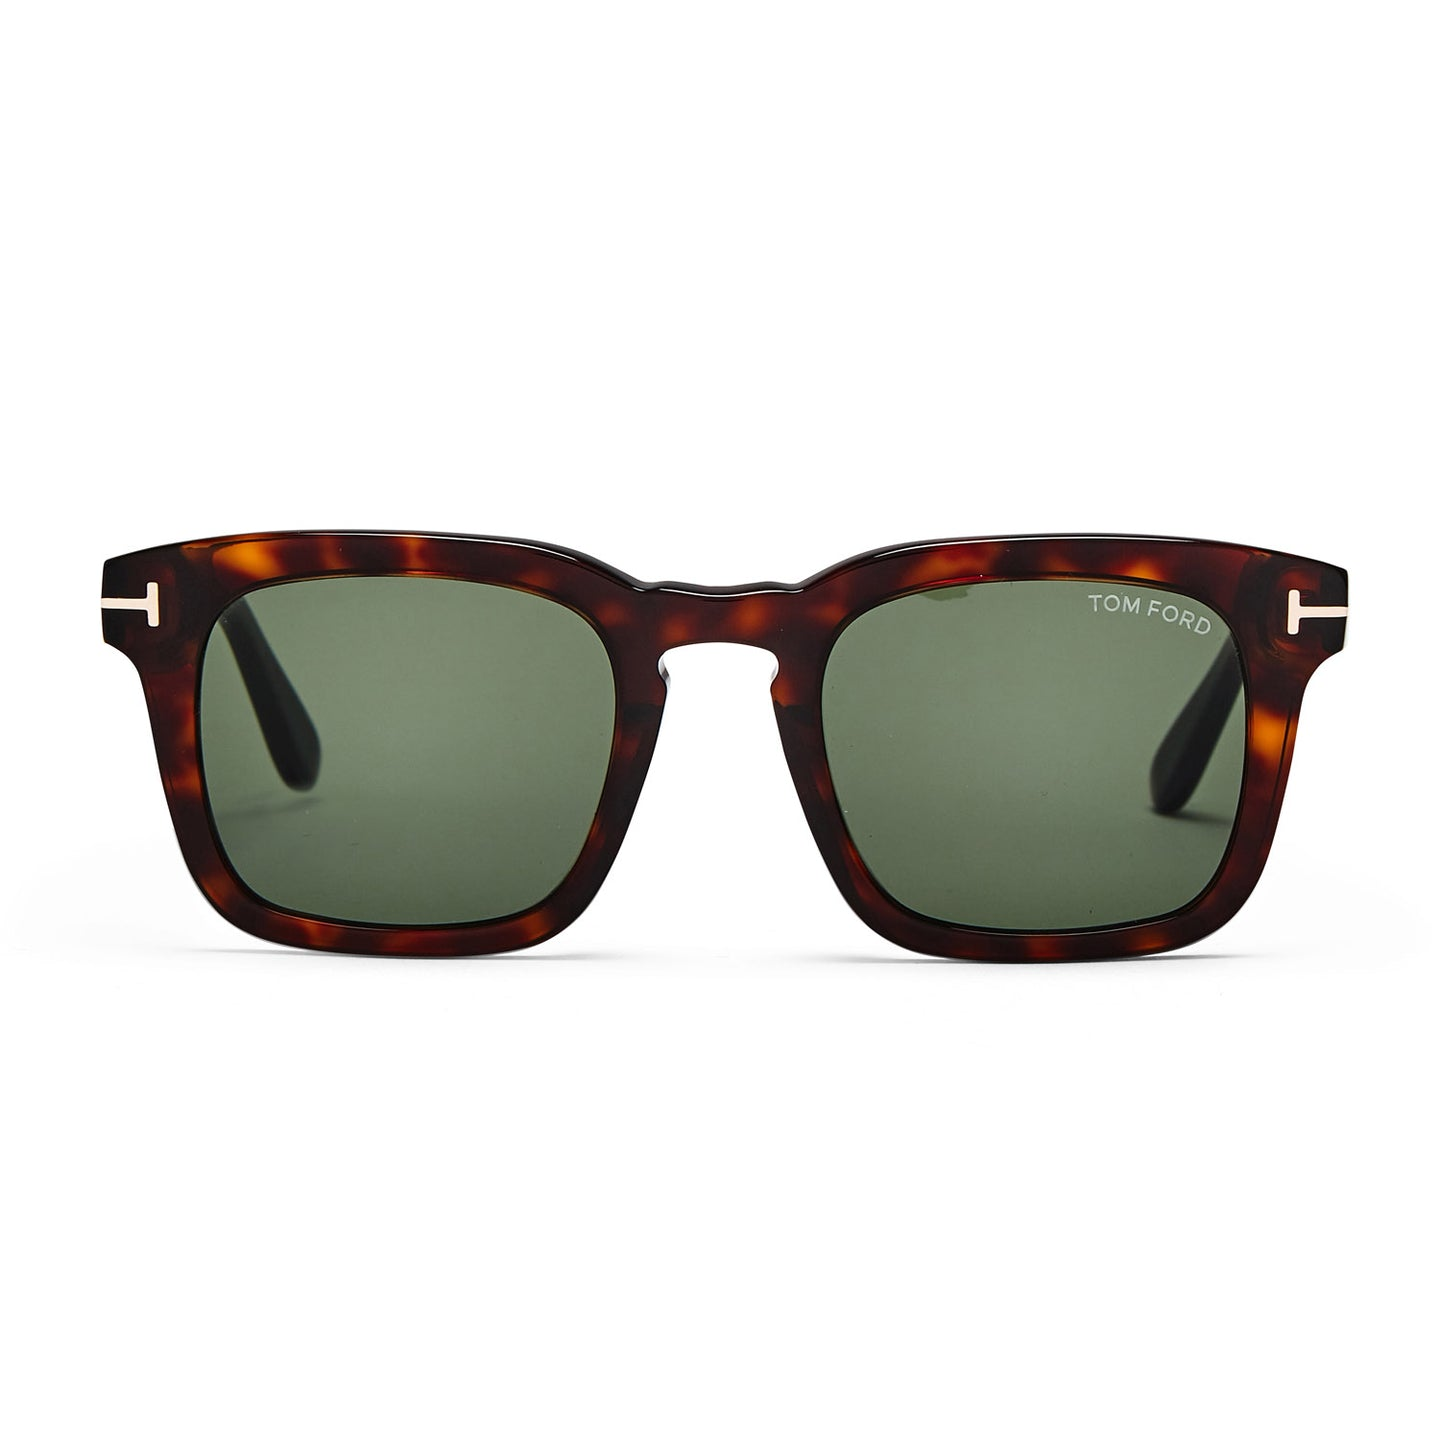 Tom Ford Dax (Green / Dark Tortoise) - Union 22